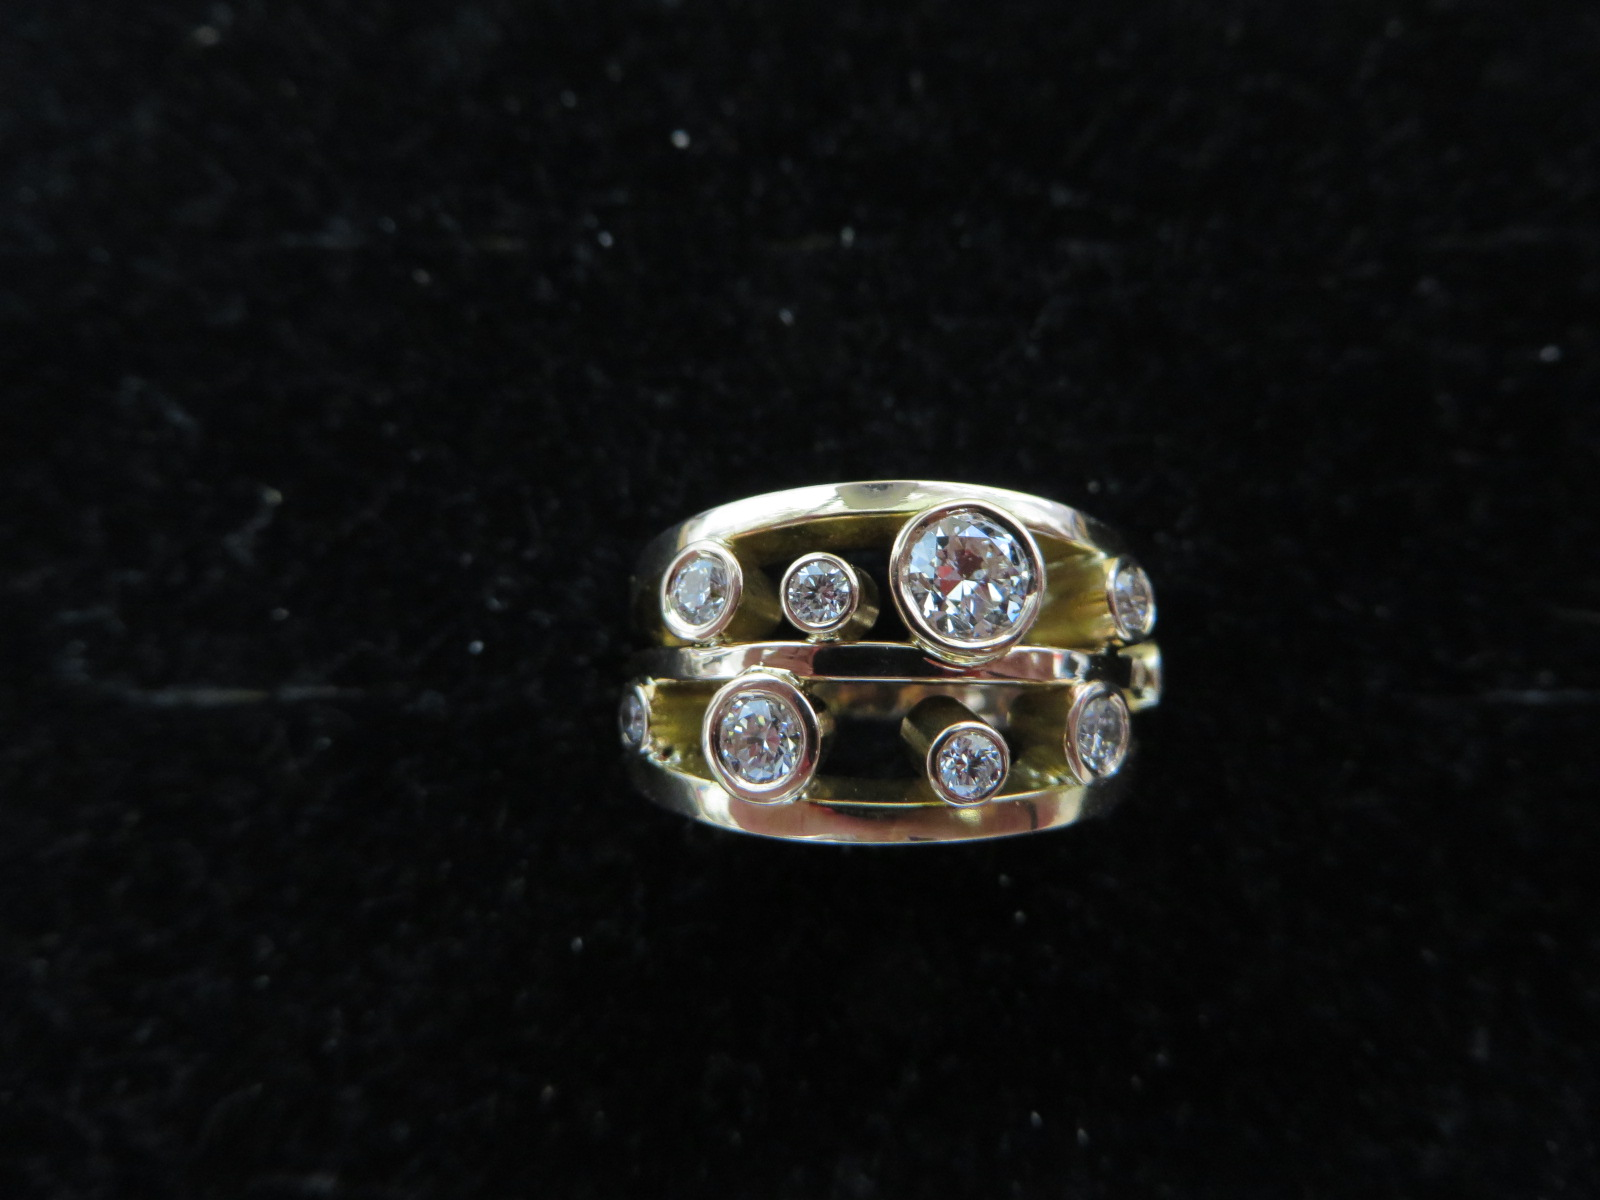 This is an 18ct rose gold hand made mount with the clients own diamonds plus a few extra, stunning ring and very sparkly indeed.